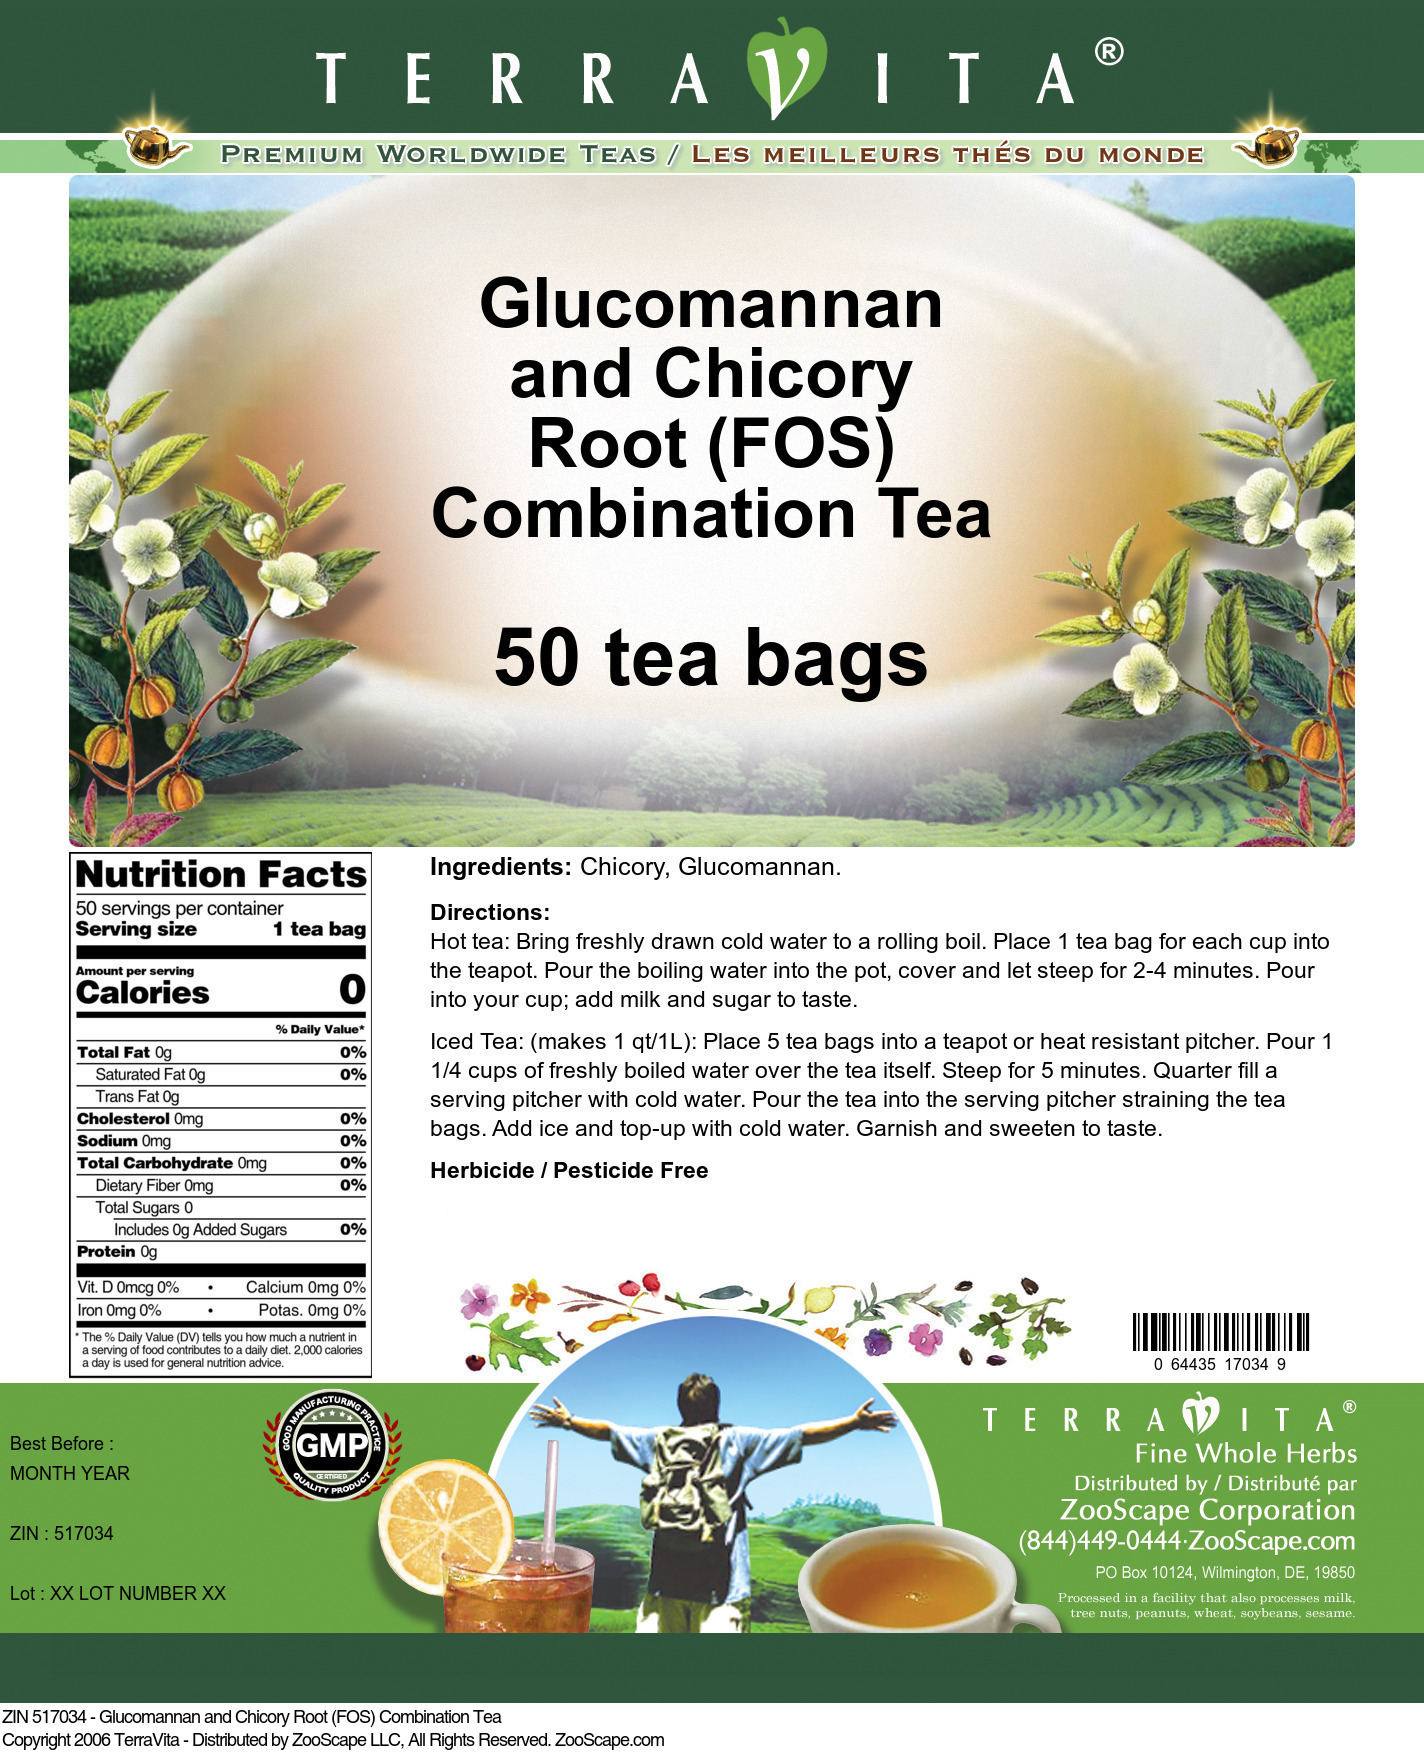 Glucomannan and Chicory Root (FOS) Combination Tea